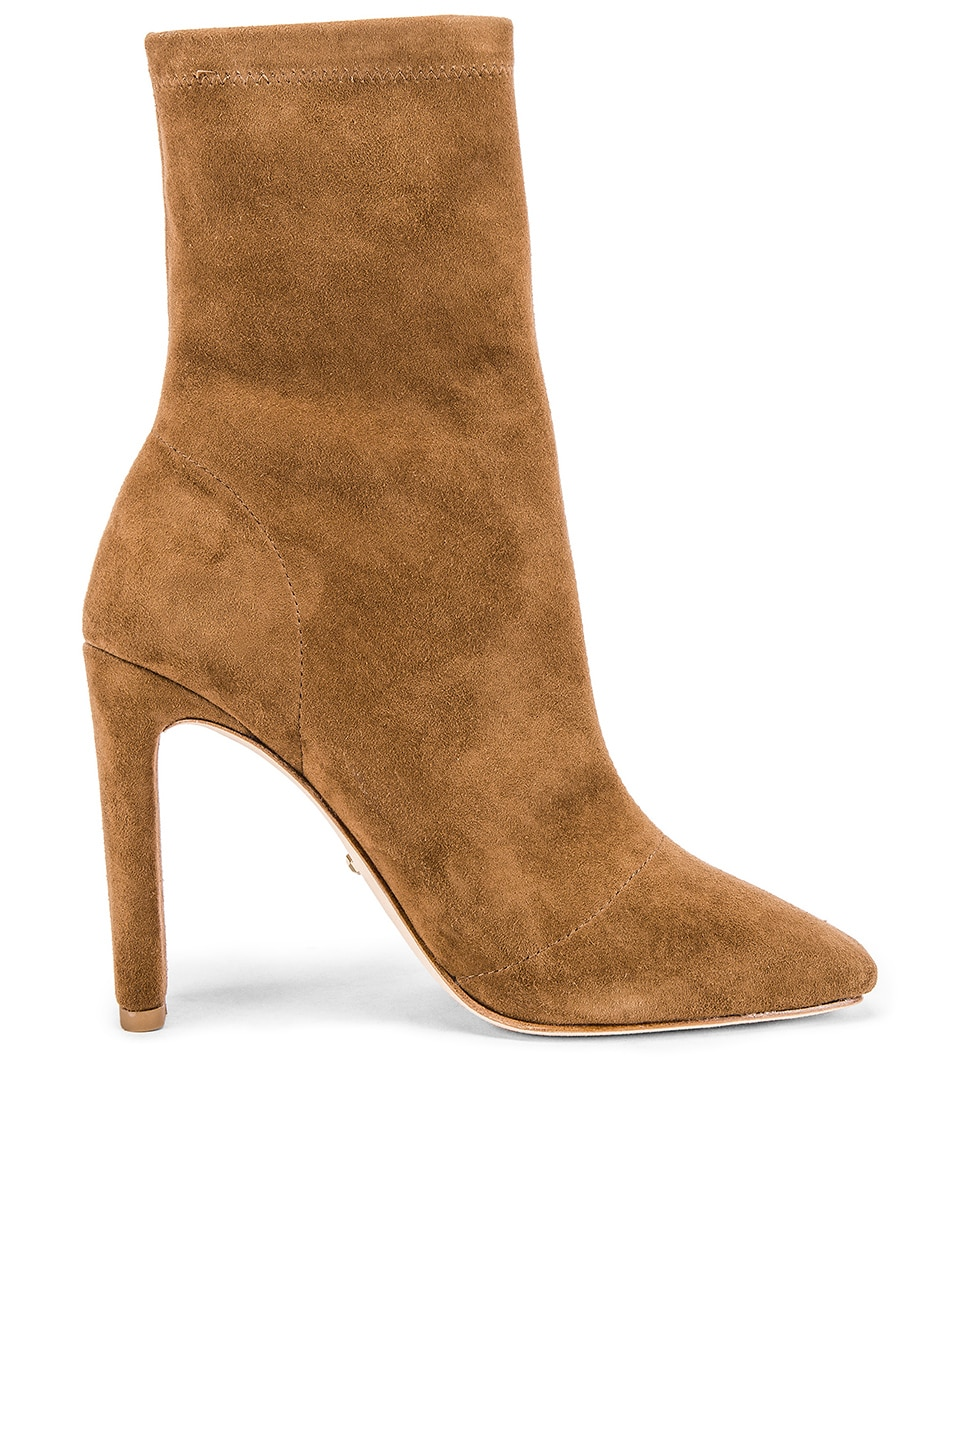 RAYE Vista Boot in Taupe